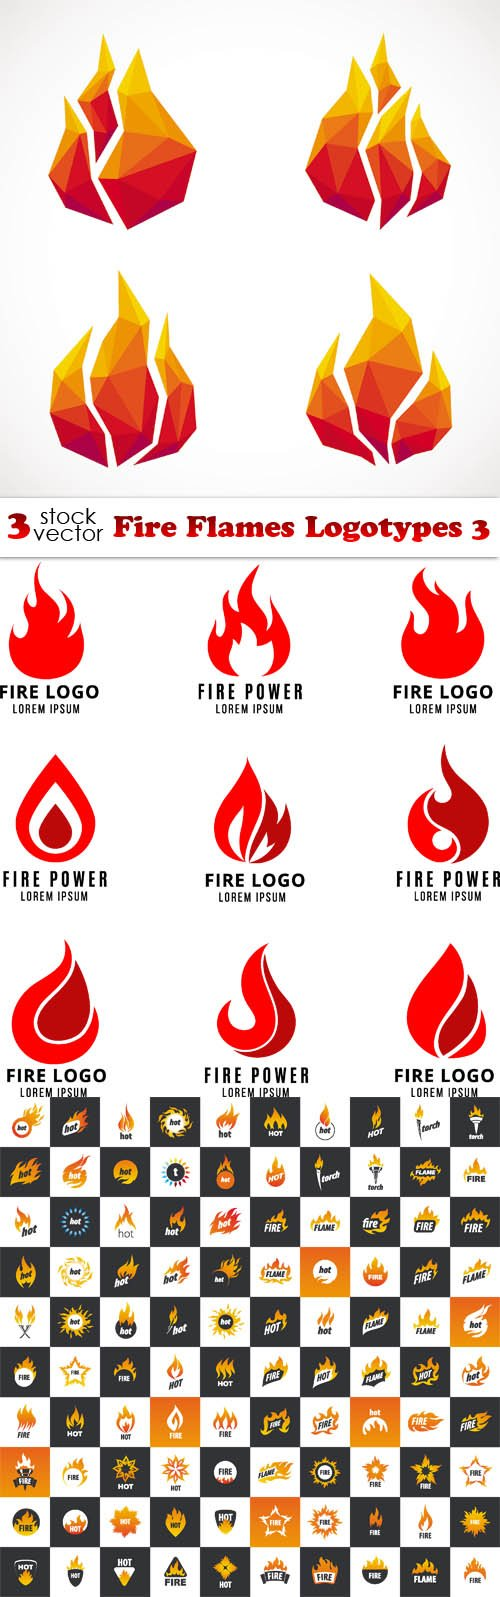 Vectors - Fire Flames Logotypes 3